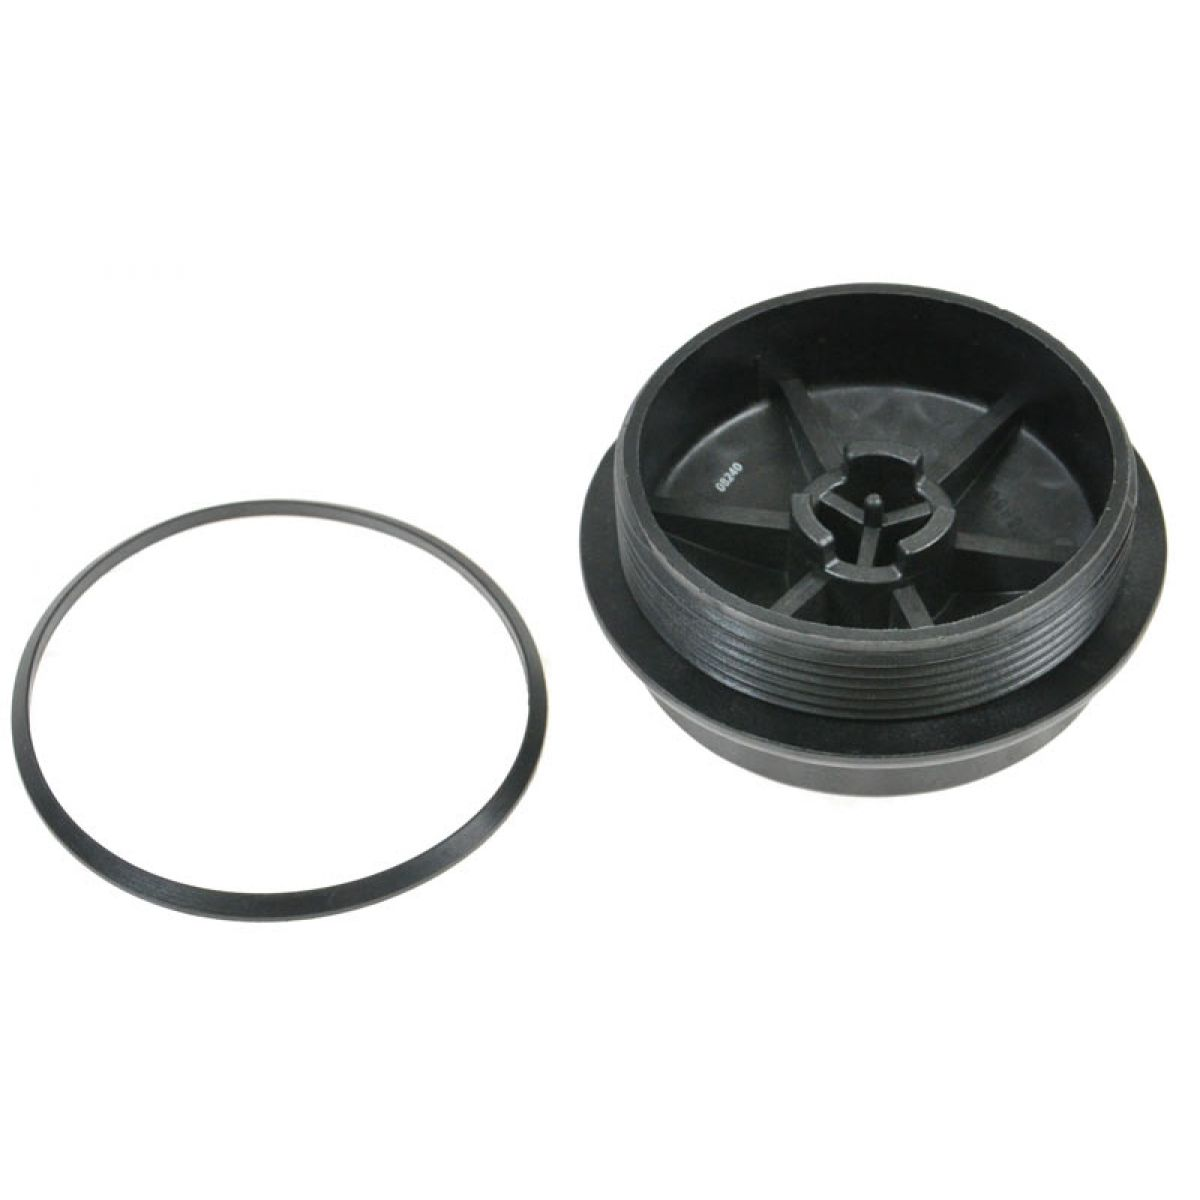 Fuel Filter Housing Cap Gasket For Ford Van Super Duty 7